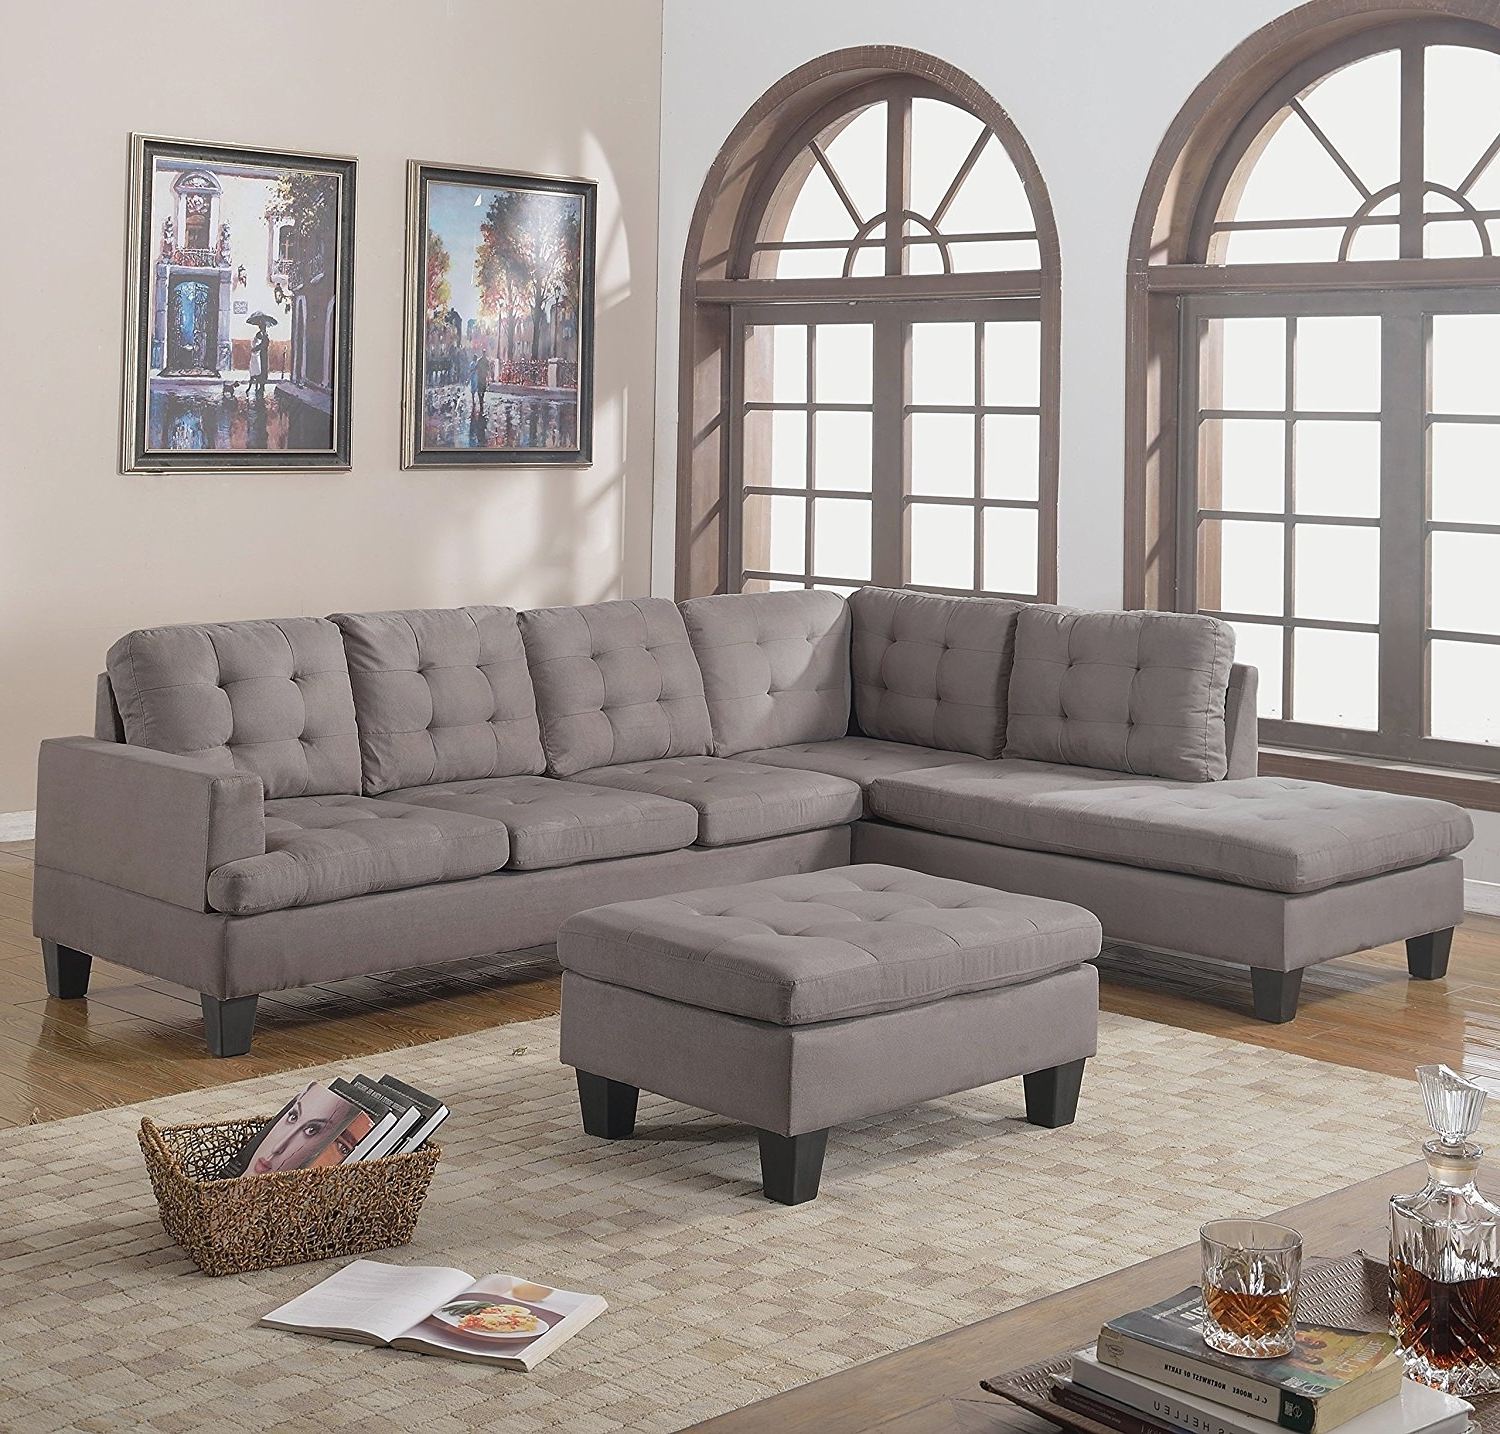 Fashionable Amazon: Divano Roma Furniture 3 Piece Reversible Chaise Throughout Reversible Chaise Sectional Sofas (View 15 of 15)